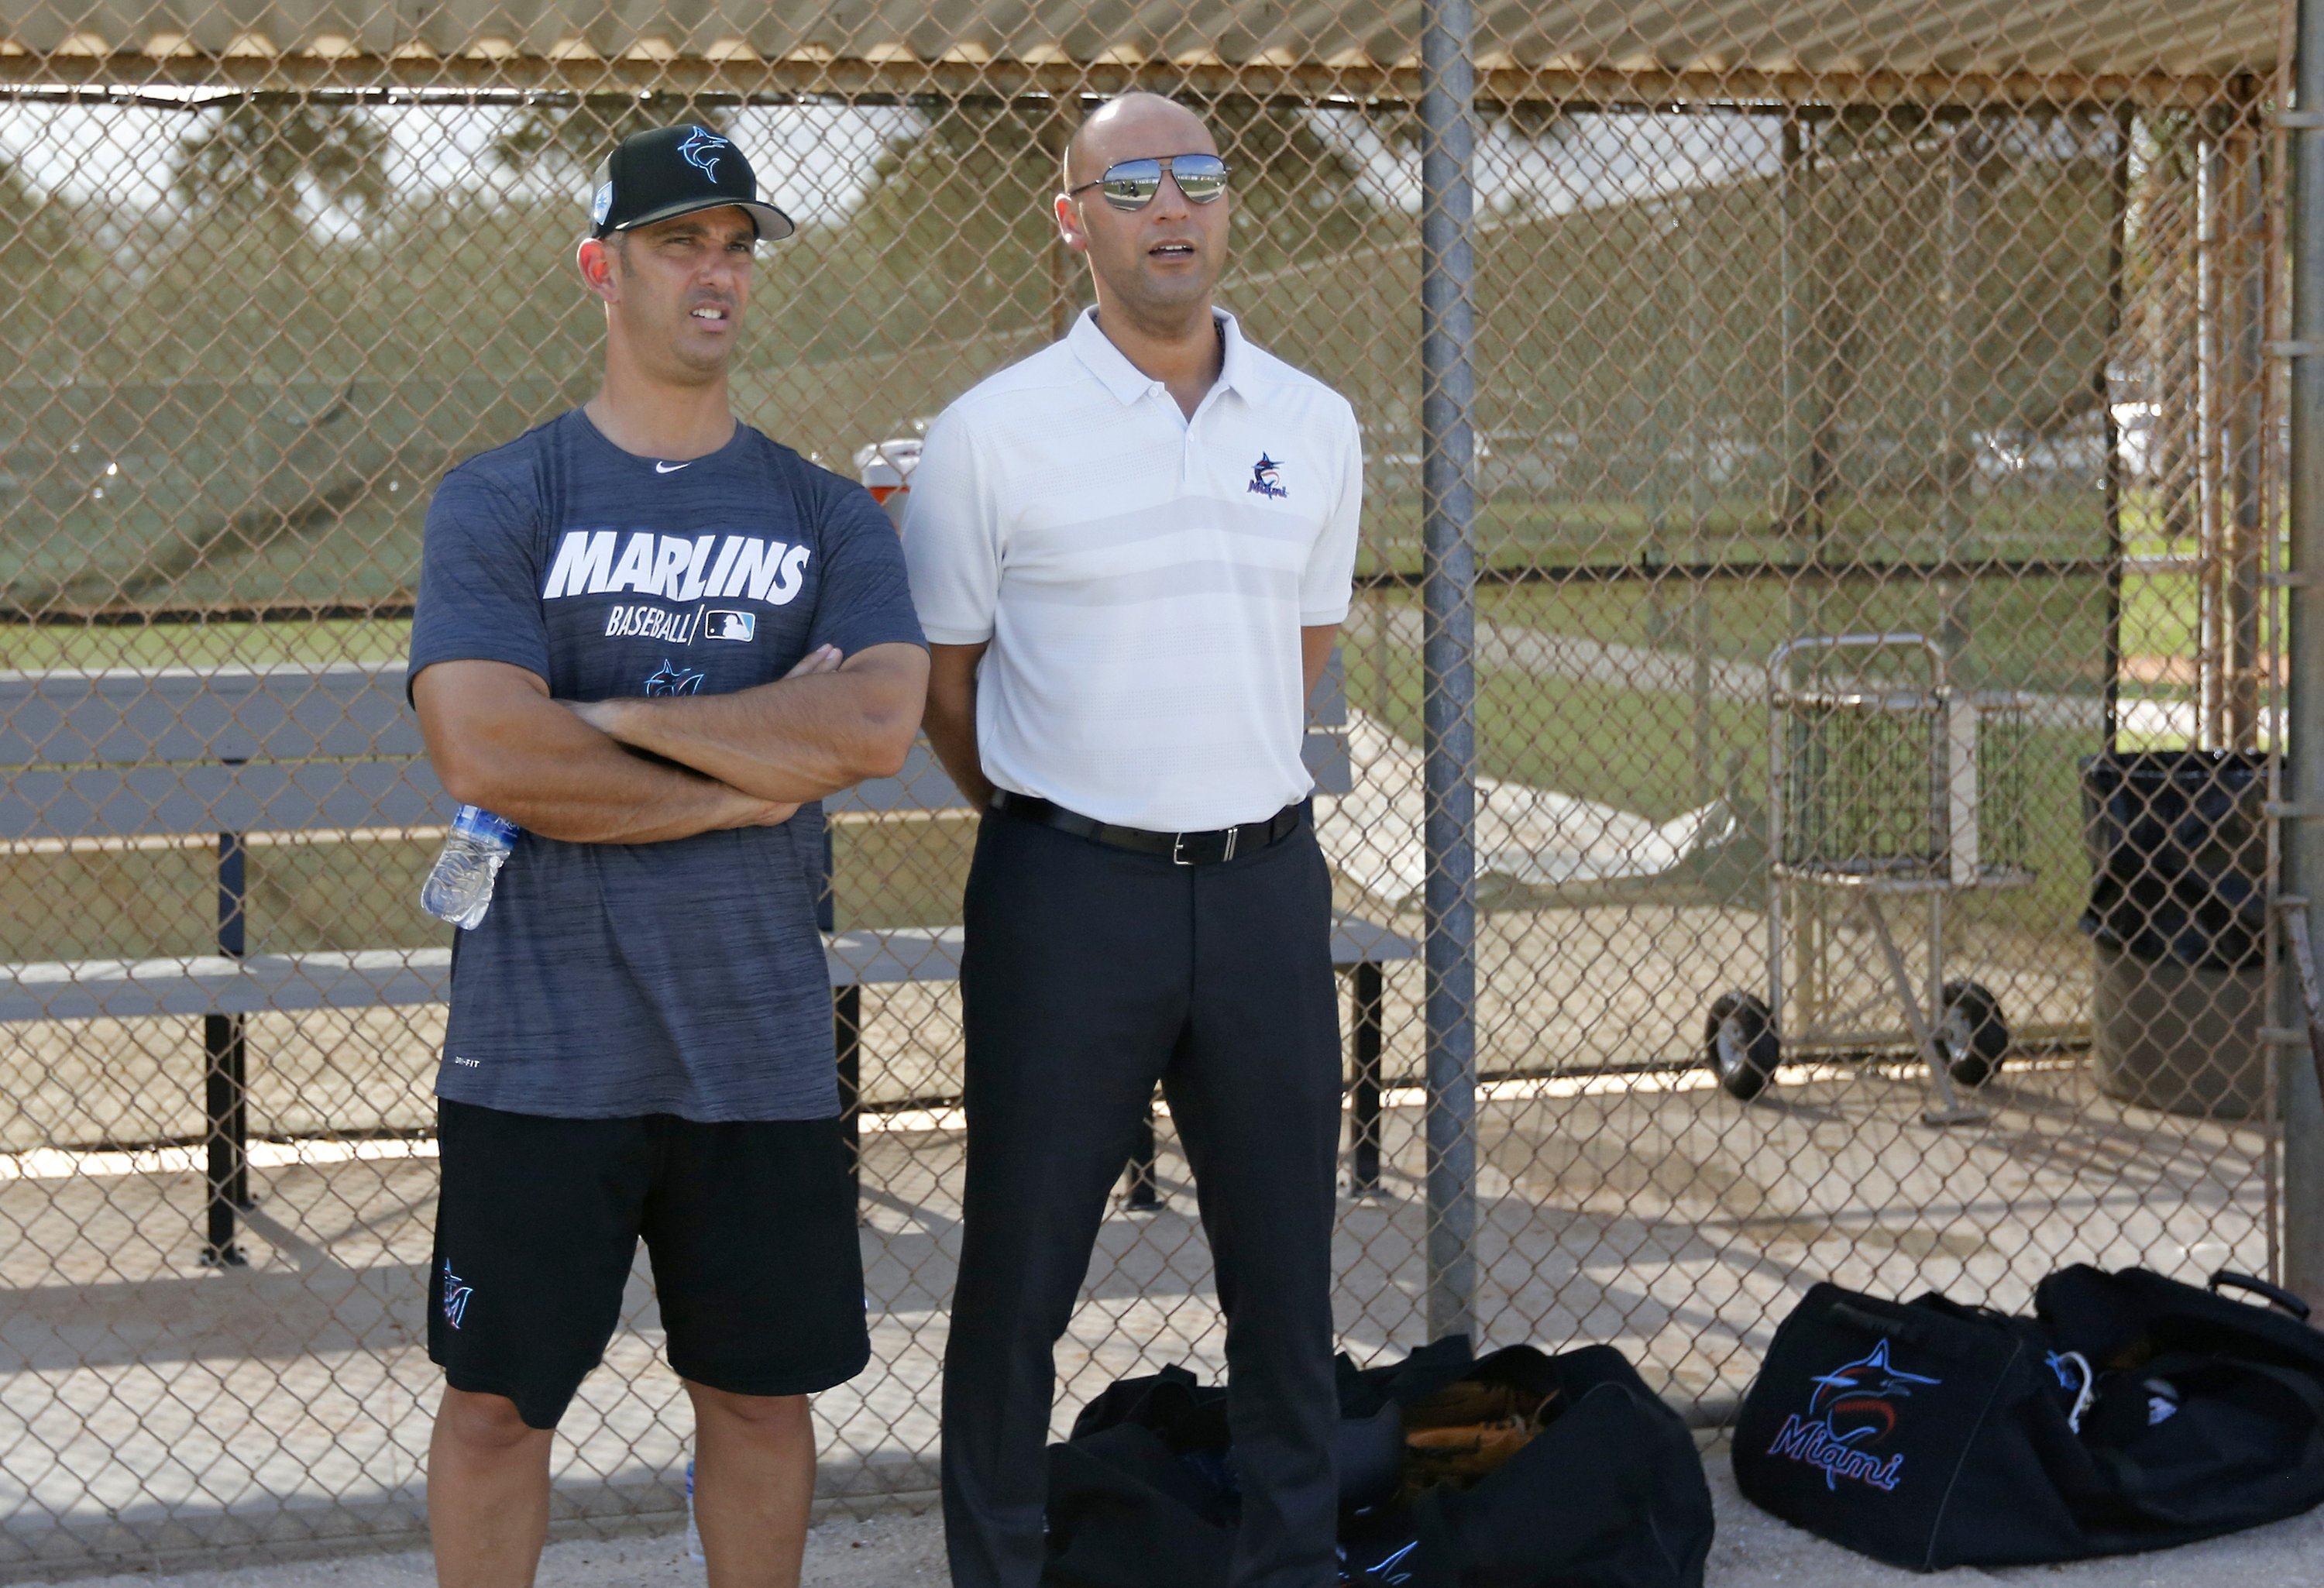 Jorge Posada on joining Marlins: 'Perfect timing'